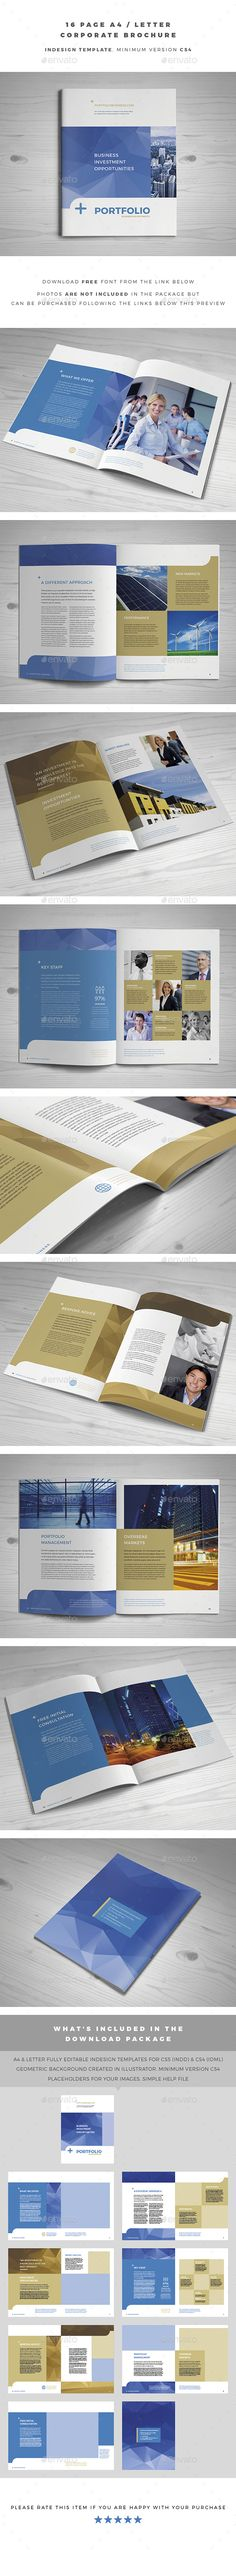 A4 / Letter Corporate Brochure Template InDesign INDD. Download here: http://graphicriver.net/item/a4-letter-corporate-brochure/14786046?ref=ksioks